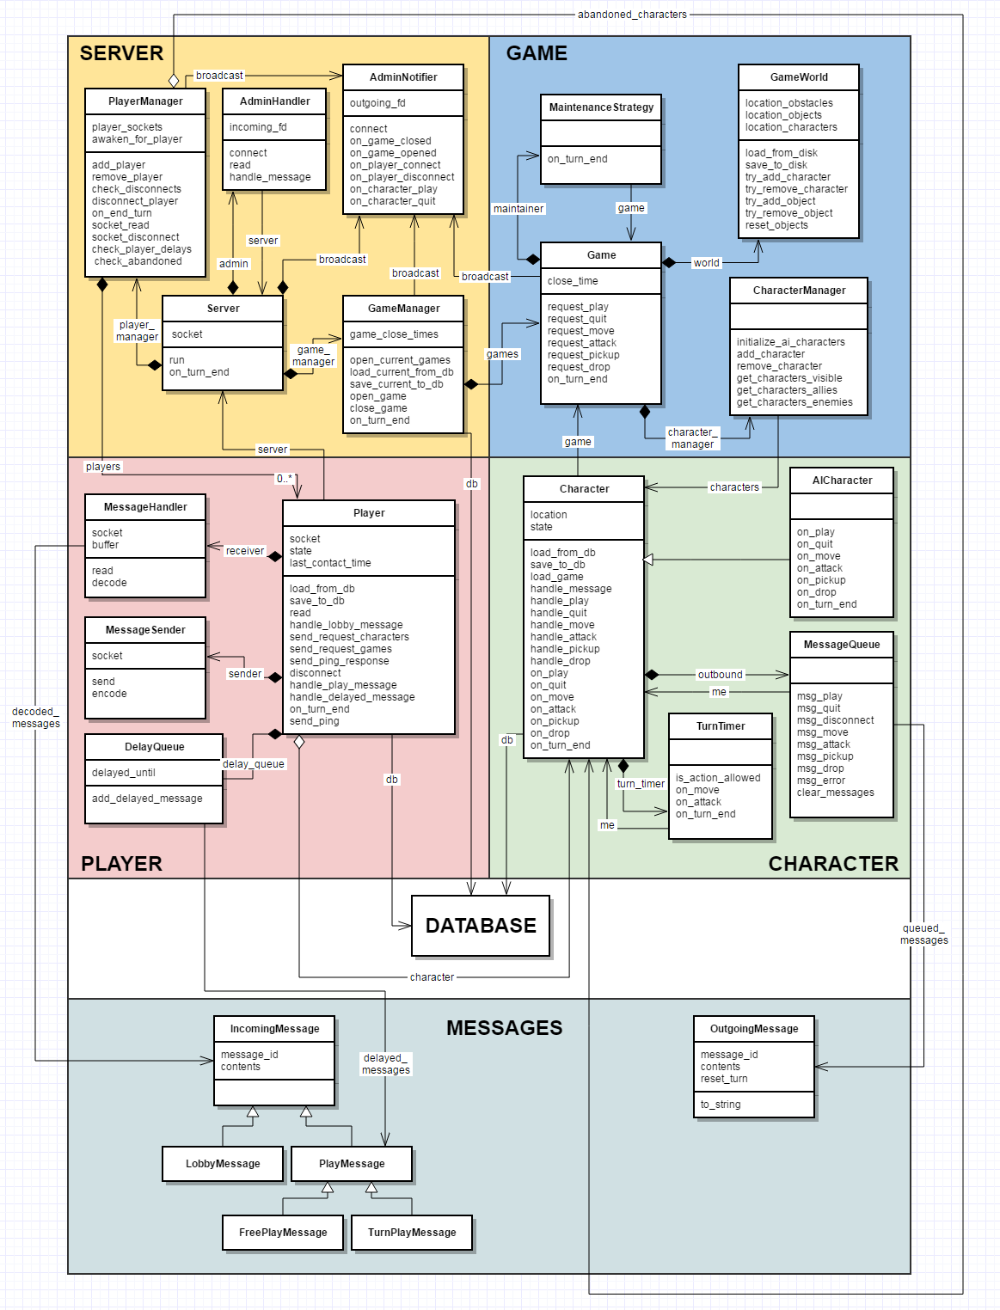 Uml Class Diagram Is It Bad Practice For Lines To Cross Stack Overflow In 2020 Class Diagram Diagram Object Oriented Programming